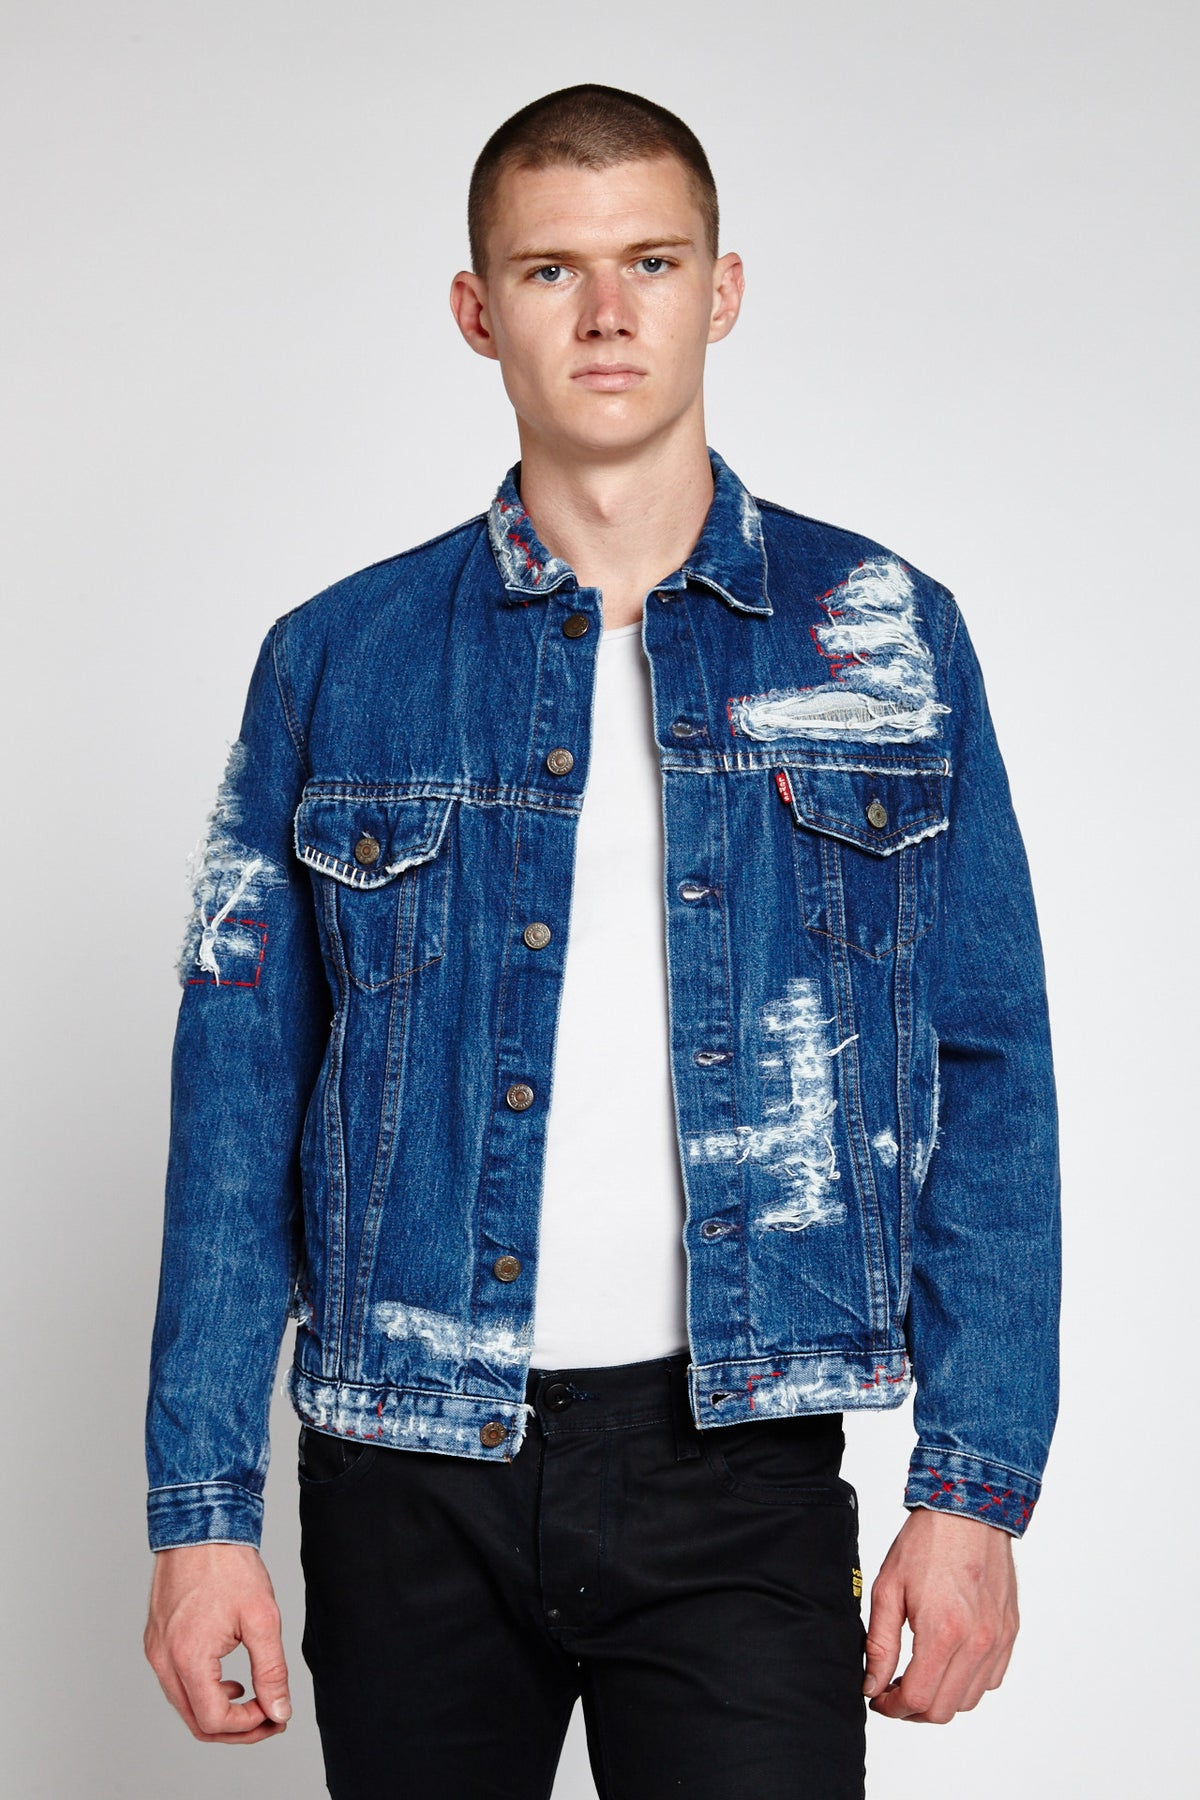 STRAPPO DARK BLUE DENIM LARGE DISTRESSED JACKET (L)-JACKETS-Mundane Official-L-Mundane Official